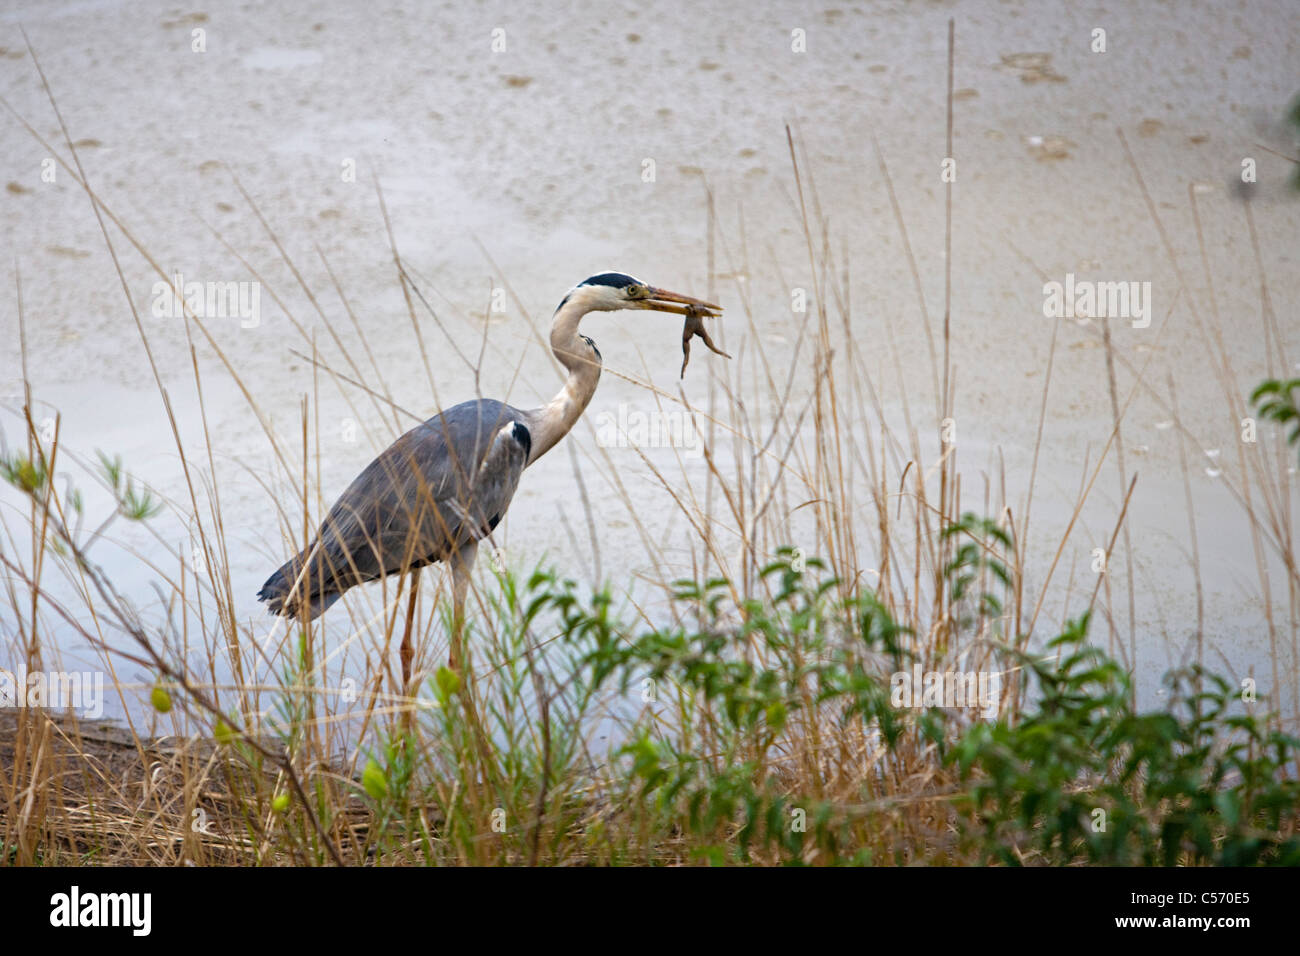 The Netherlands, 's-Graveland, Grey heron catching frog in pond. - Stock Image